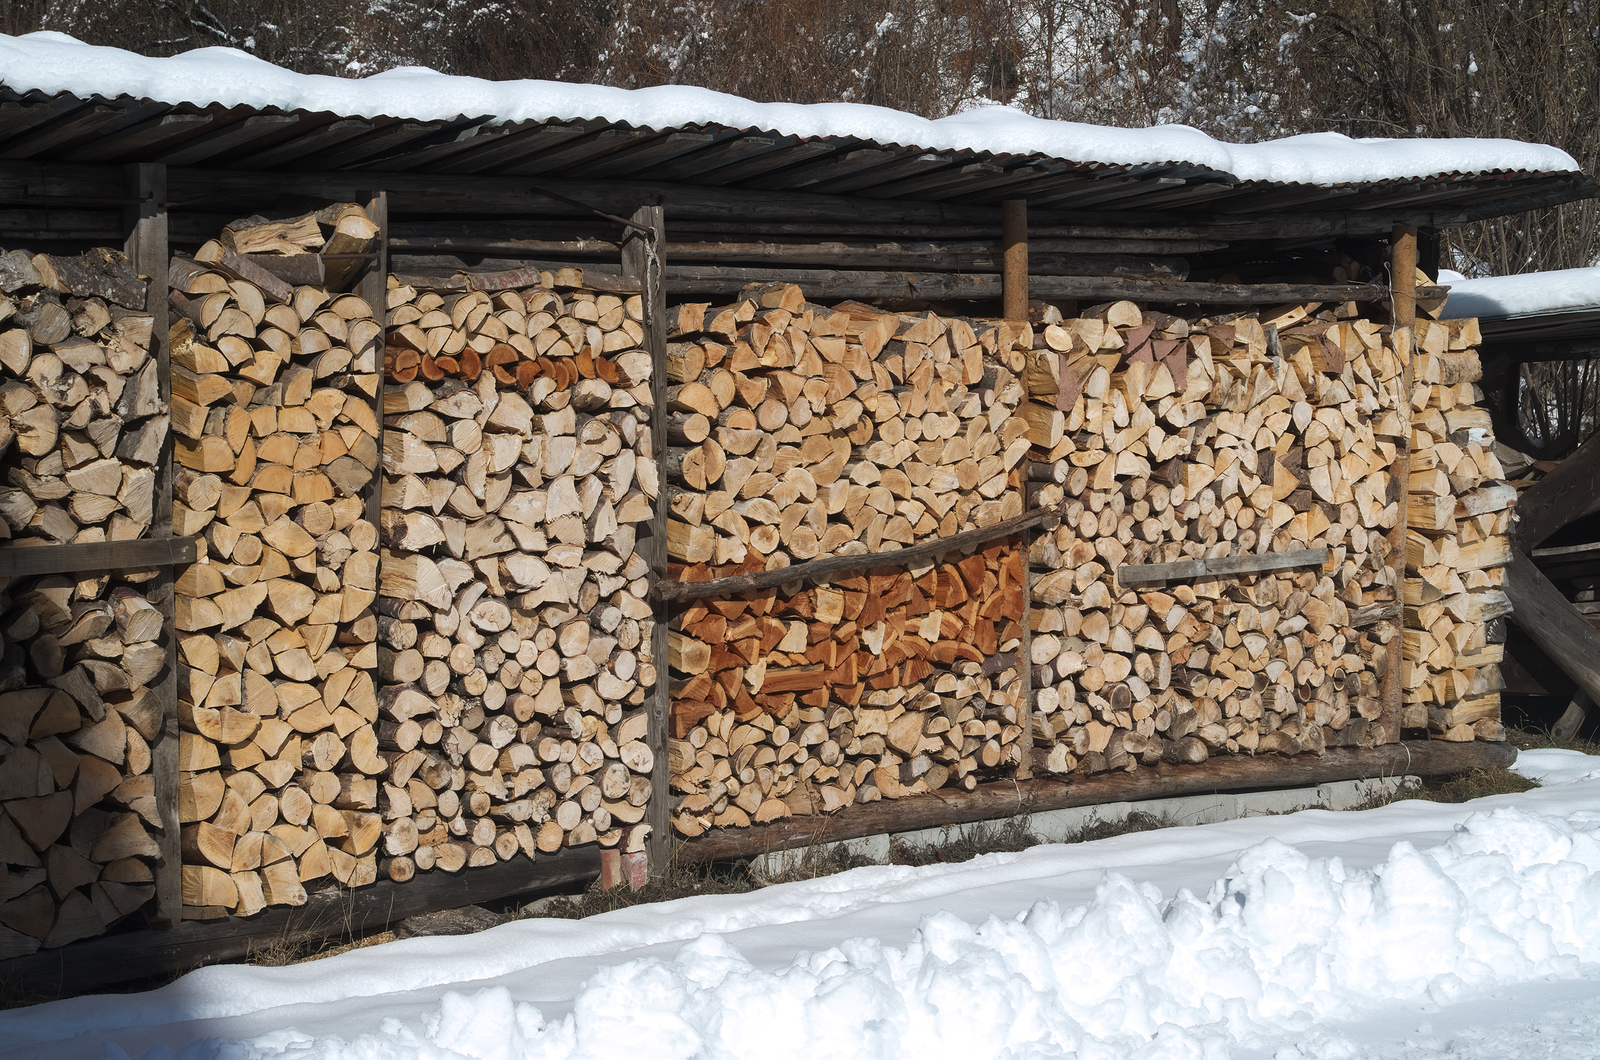 Old-timers and savvy wood burners often separate their wood by specie & dryness so they have the most heat potent fuel saved for harshest weather!